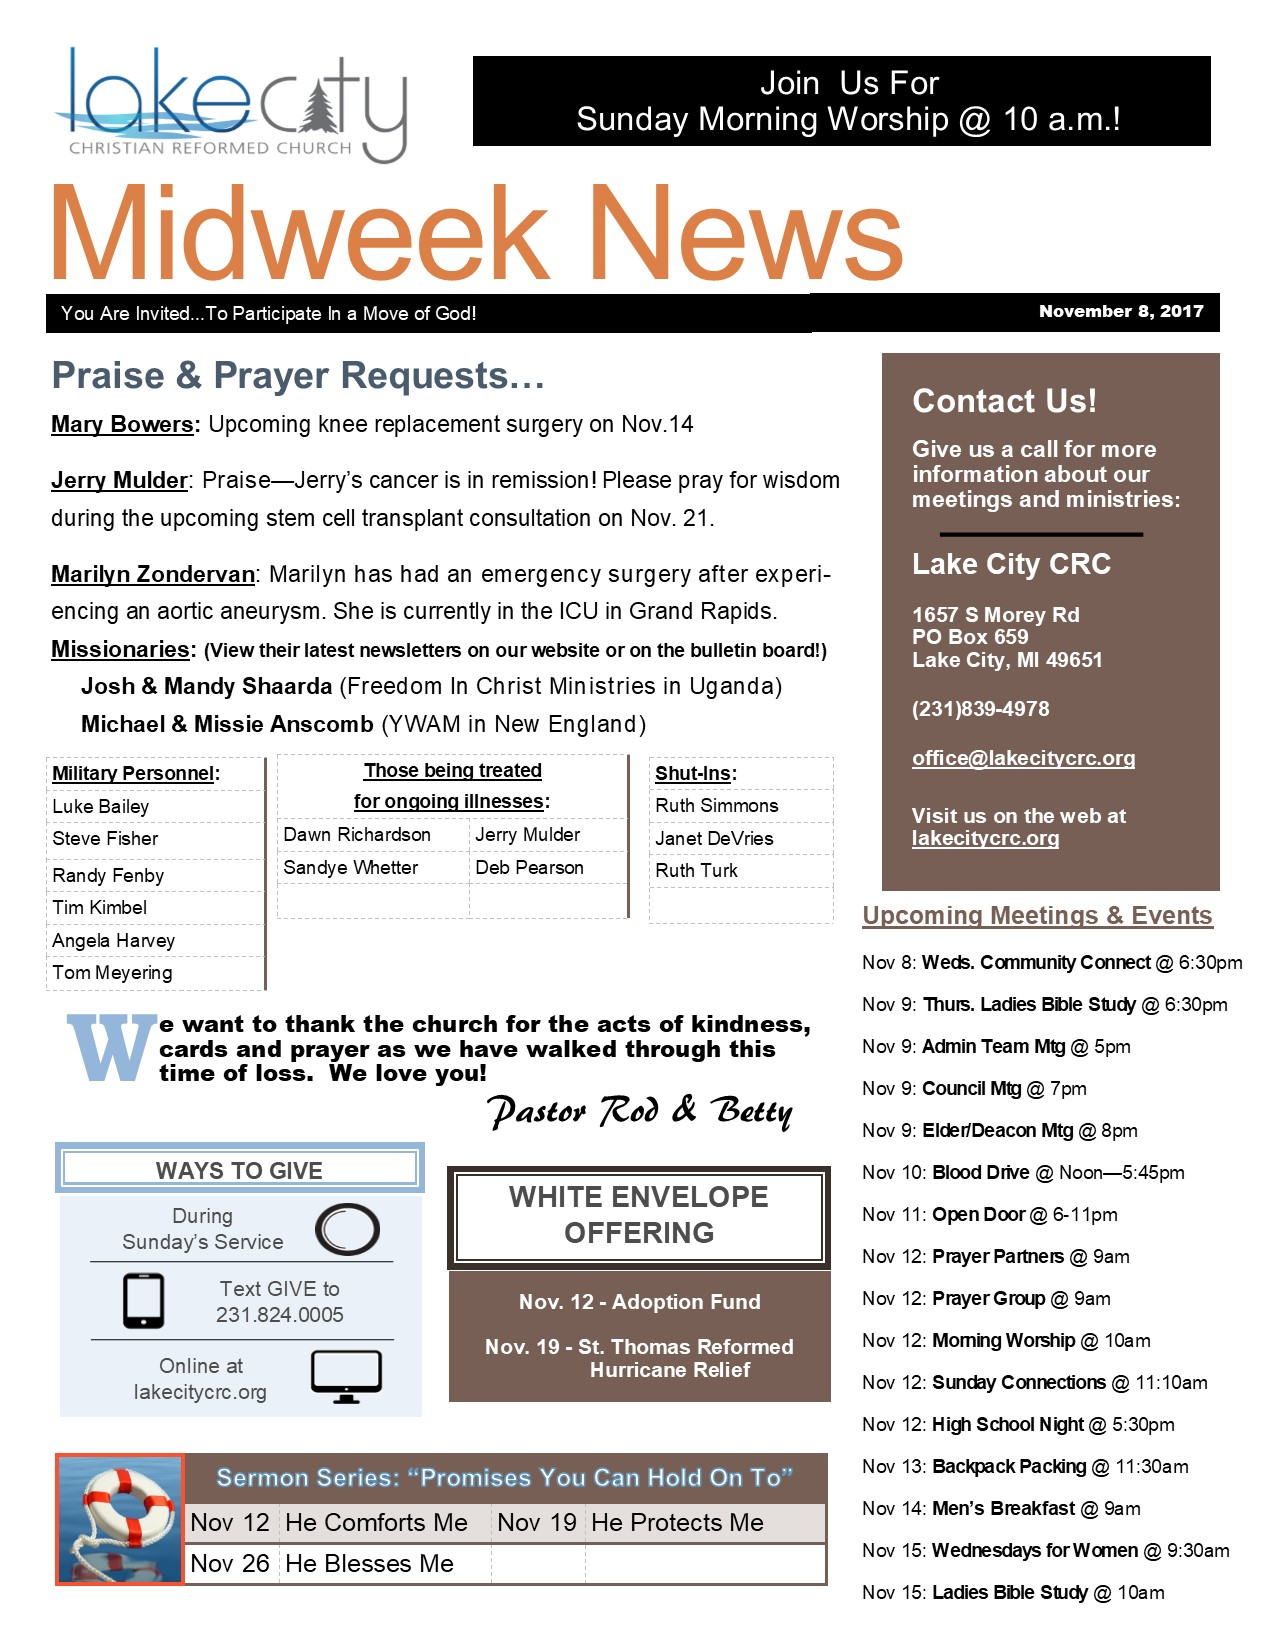 November 8, 2017 Midweek News